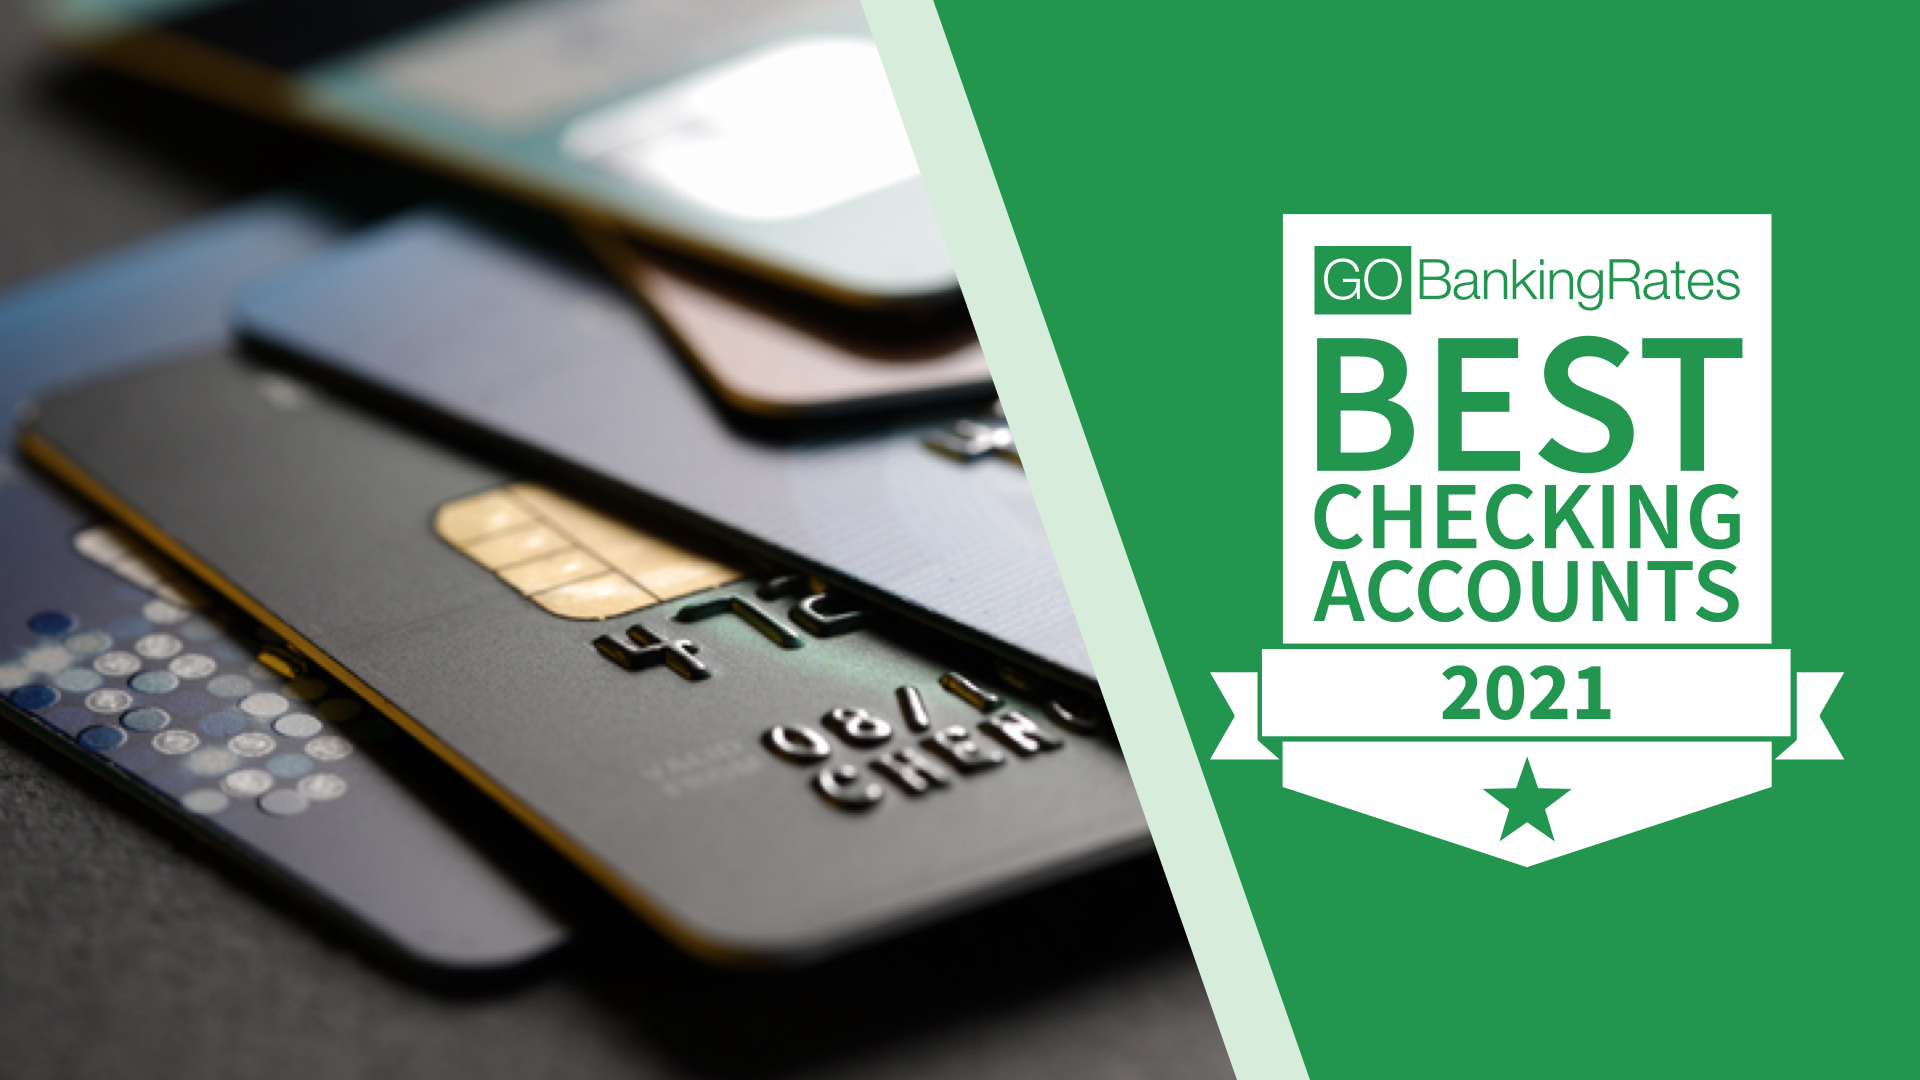 Best Checking Accounts in 2021